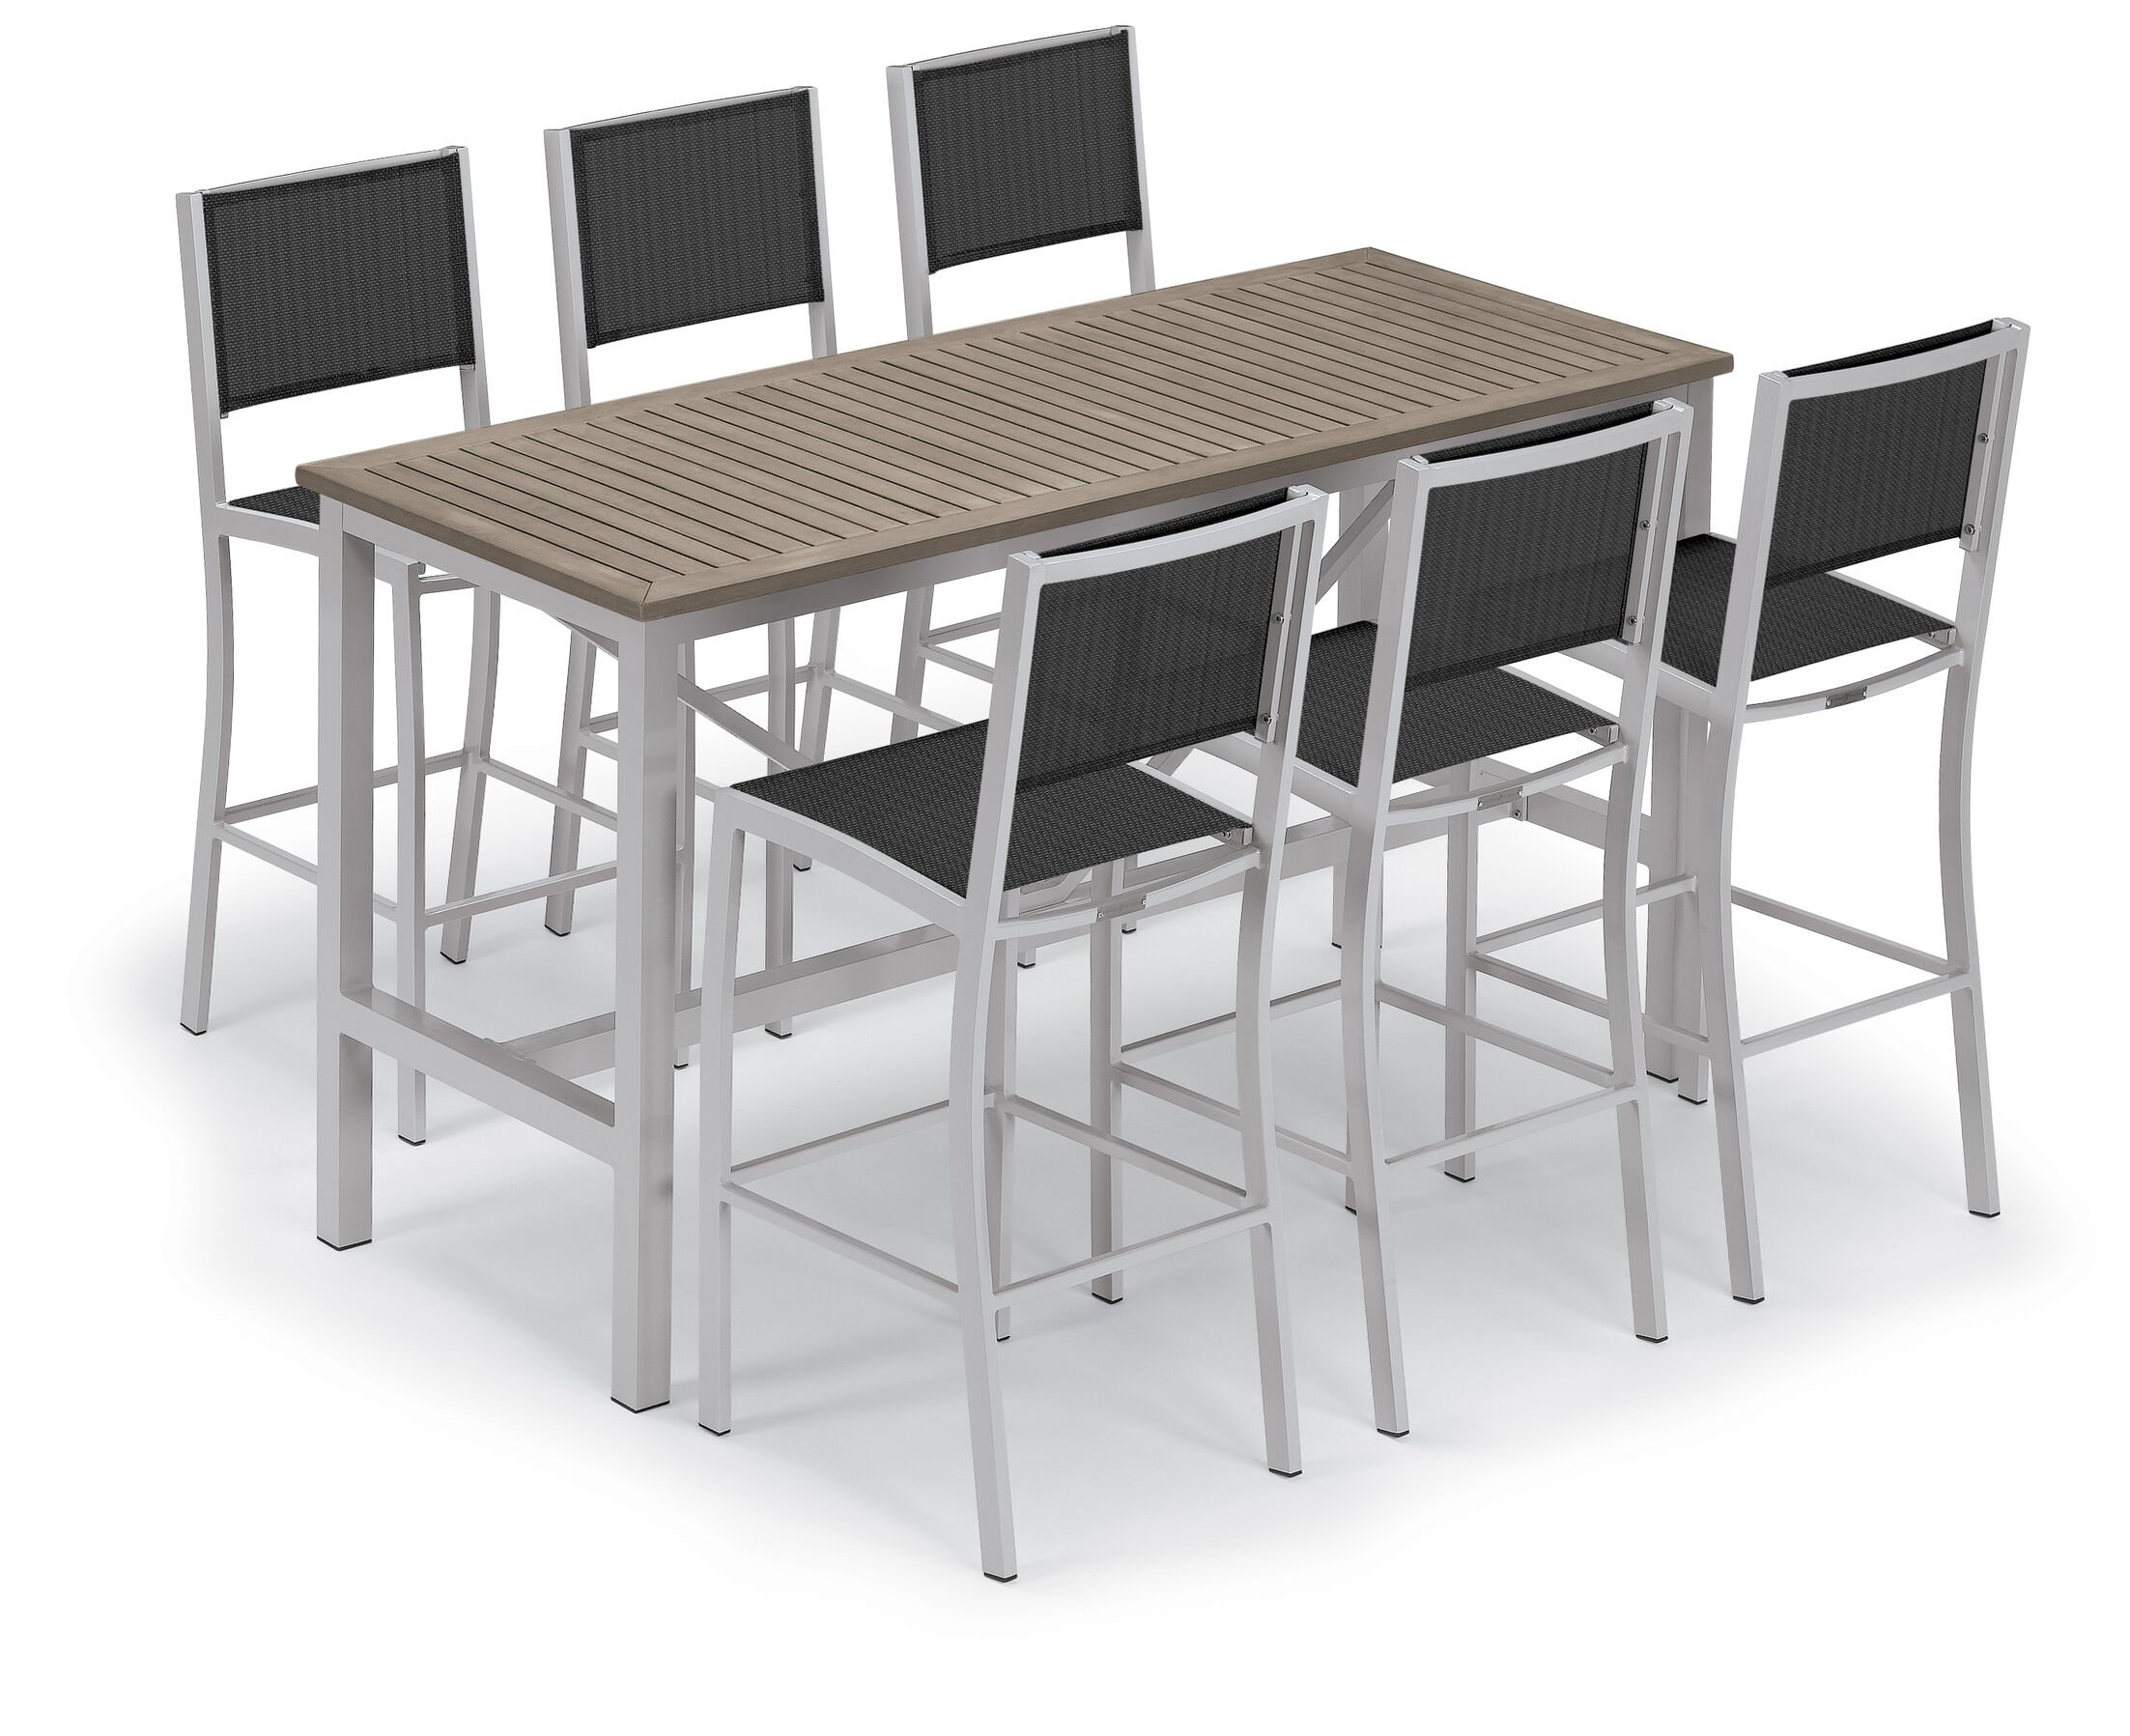 Maclin 7 Piece Bar Height Dining Set Color: Natural, Accessory Color: Slate Sling